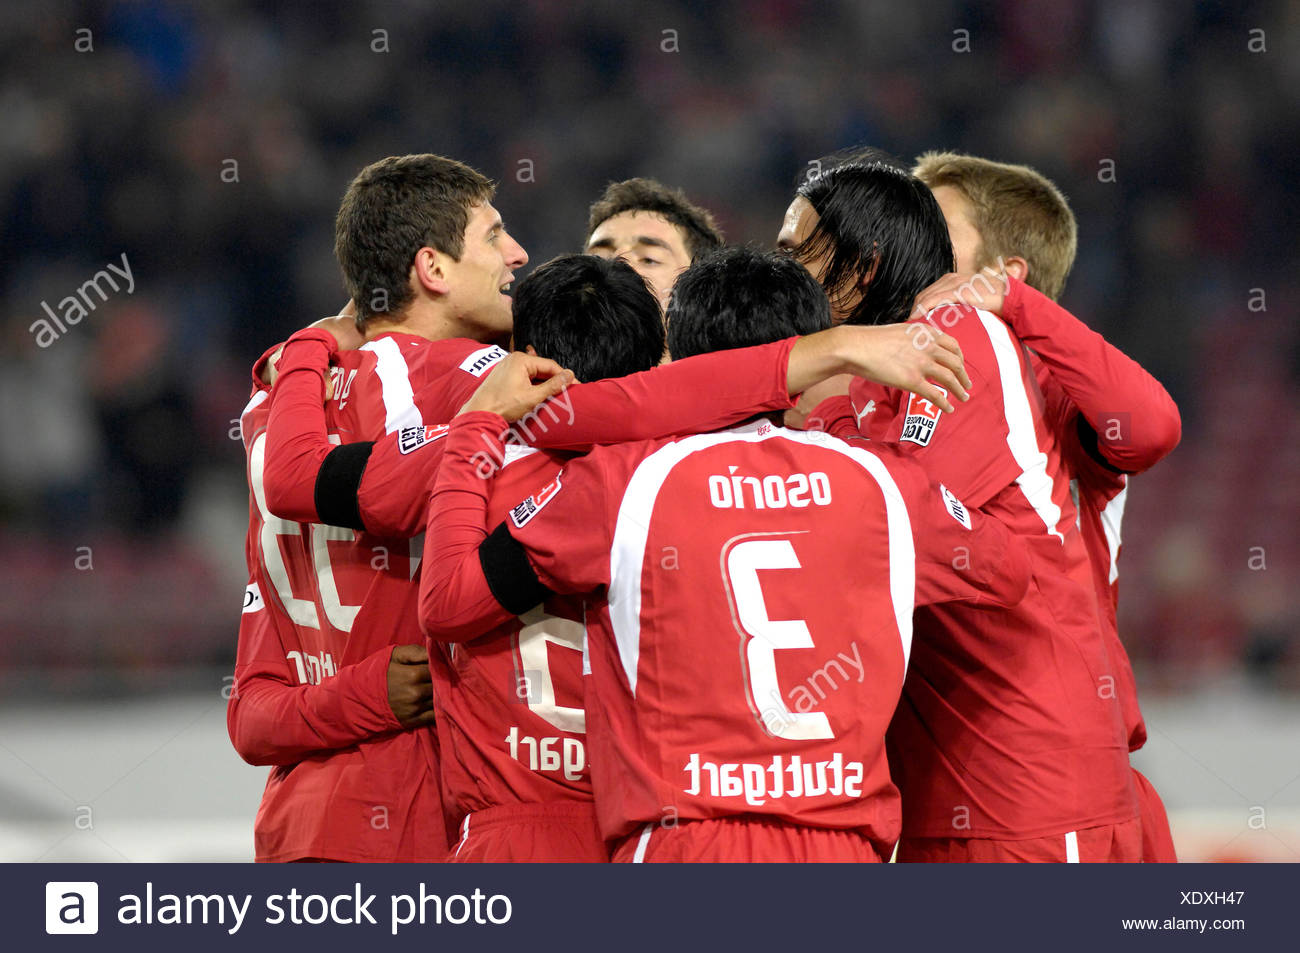 VfB Stuttgart players cheer after goal Stock Photo